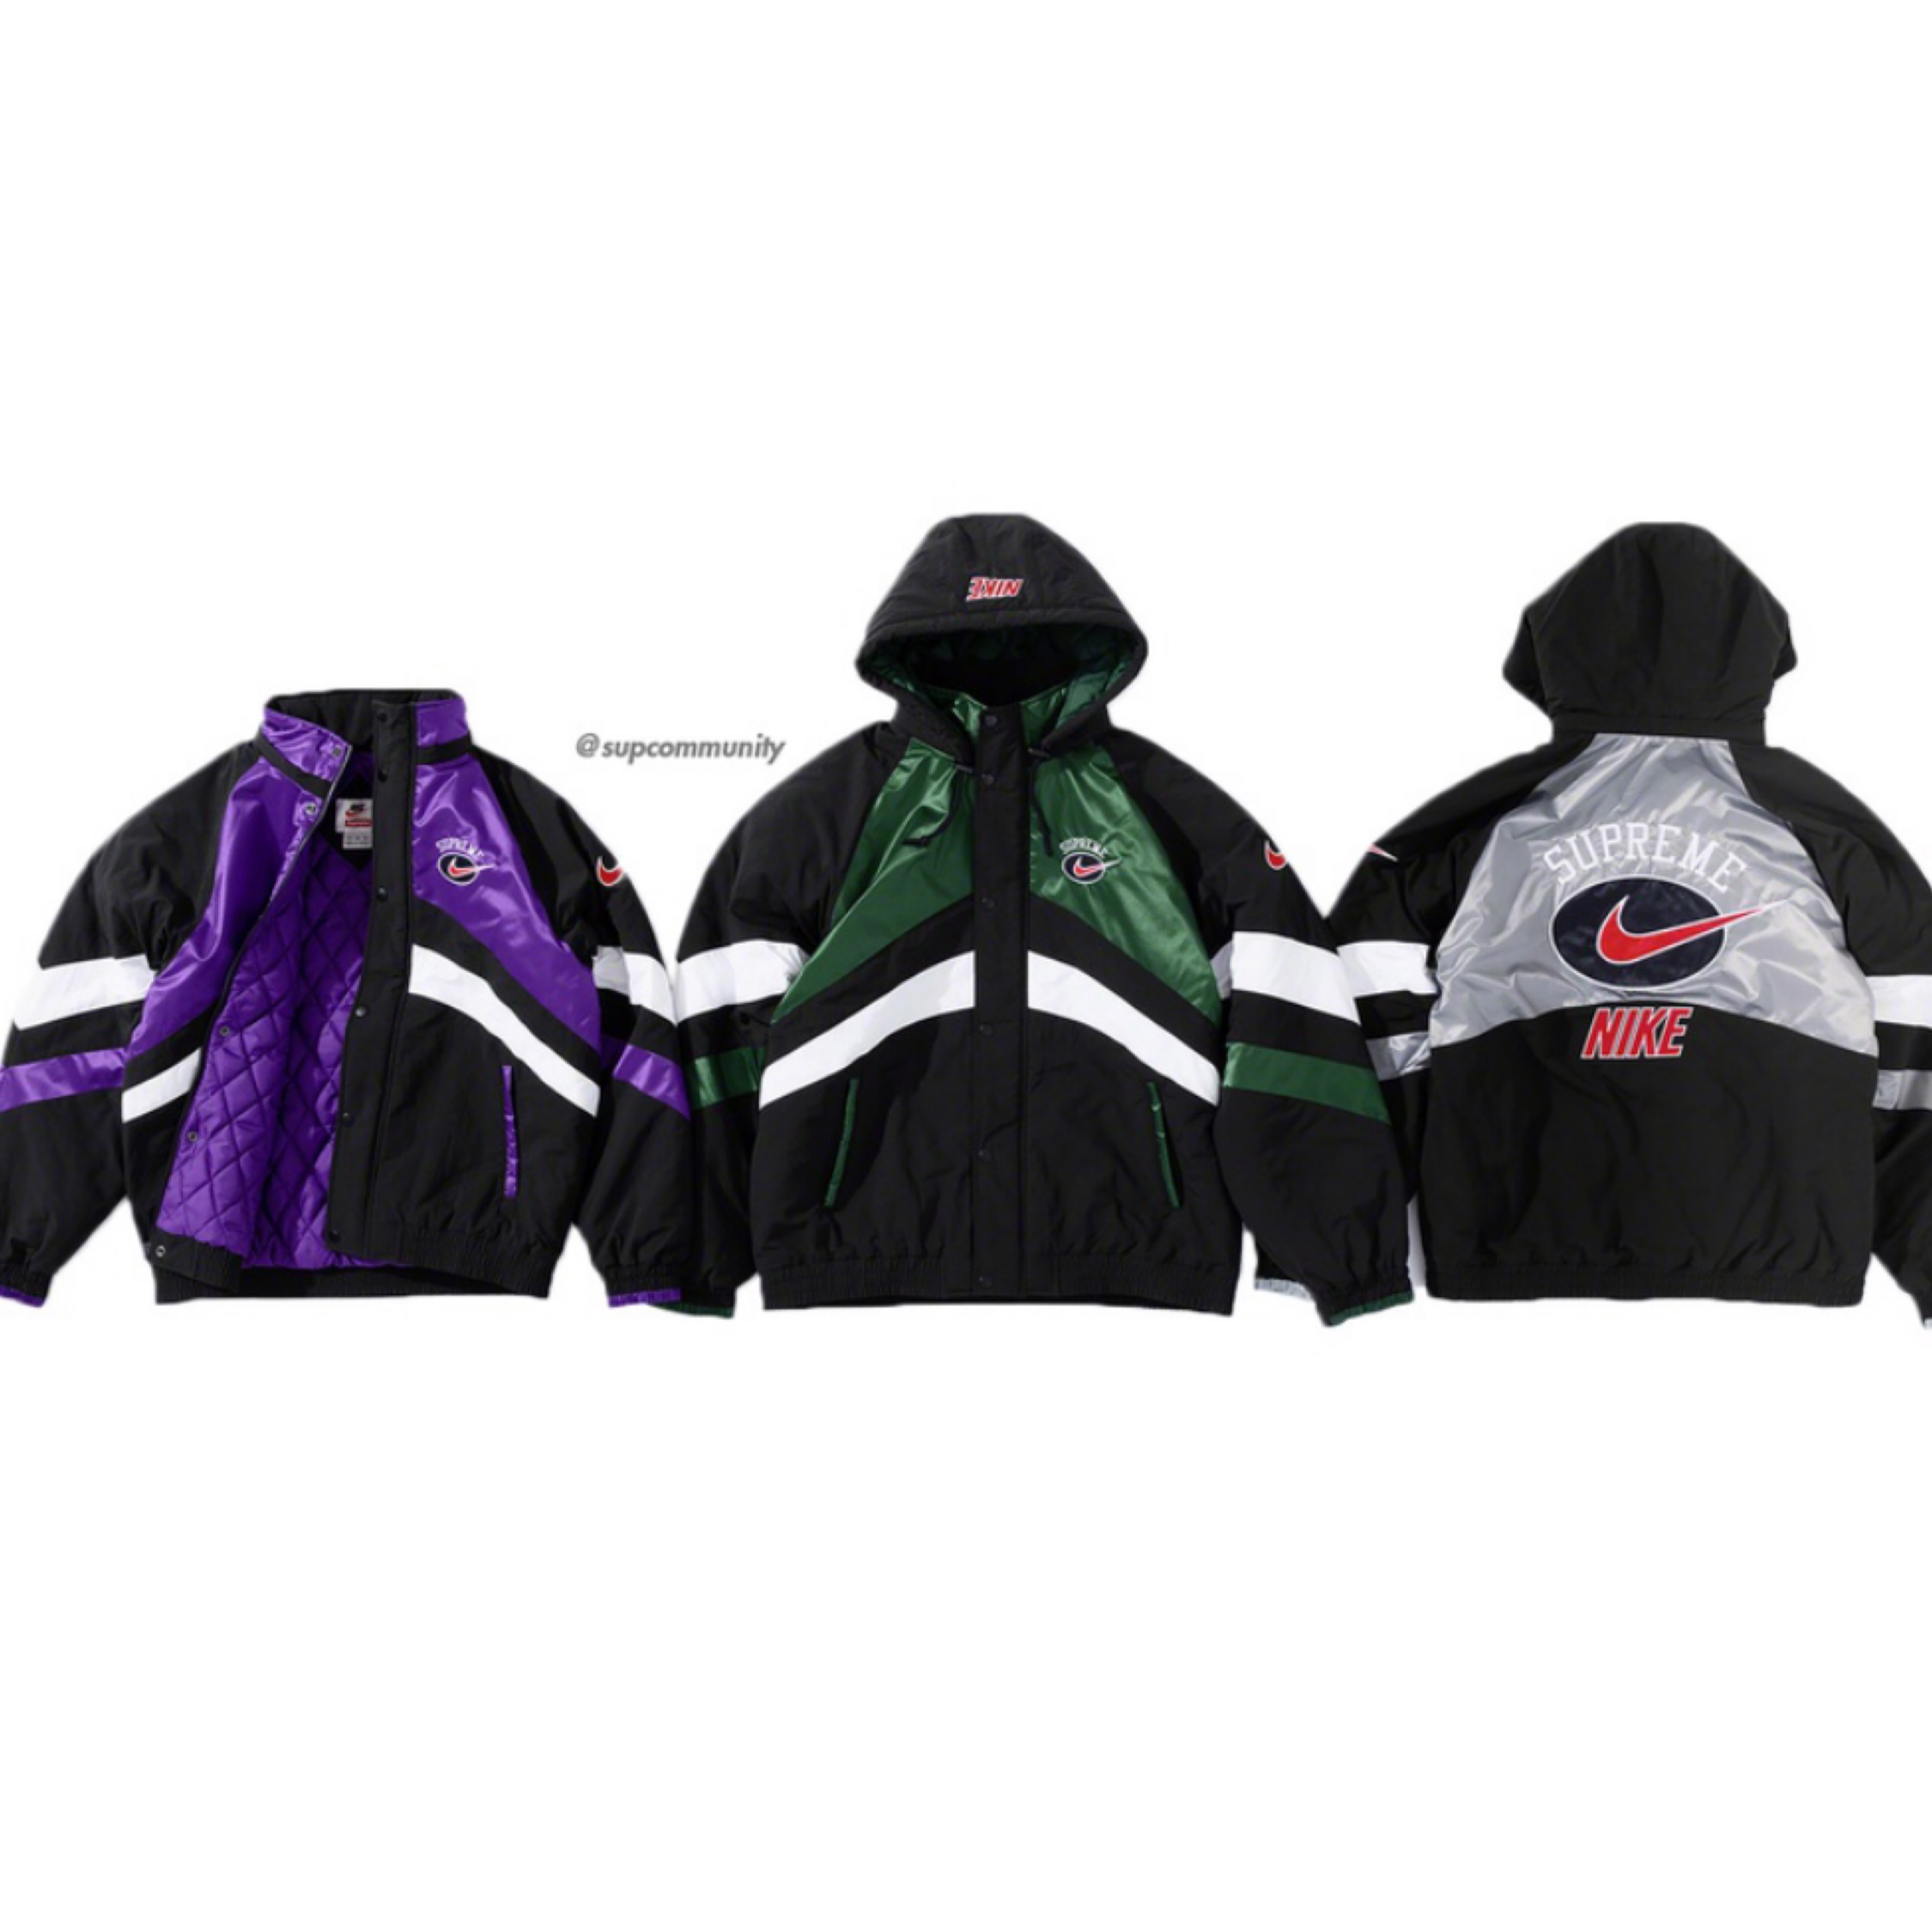 Supreme Nike Hooded Sport Jacket Small 200+ Sales